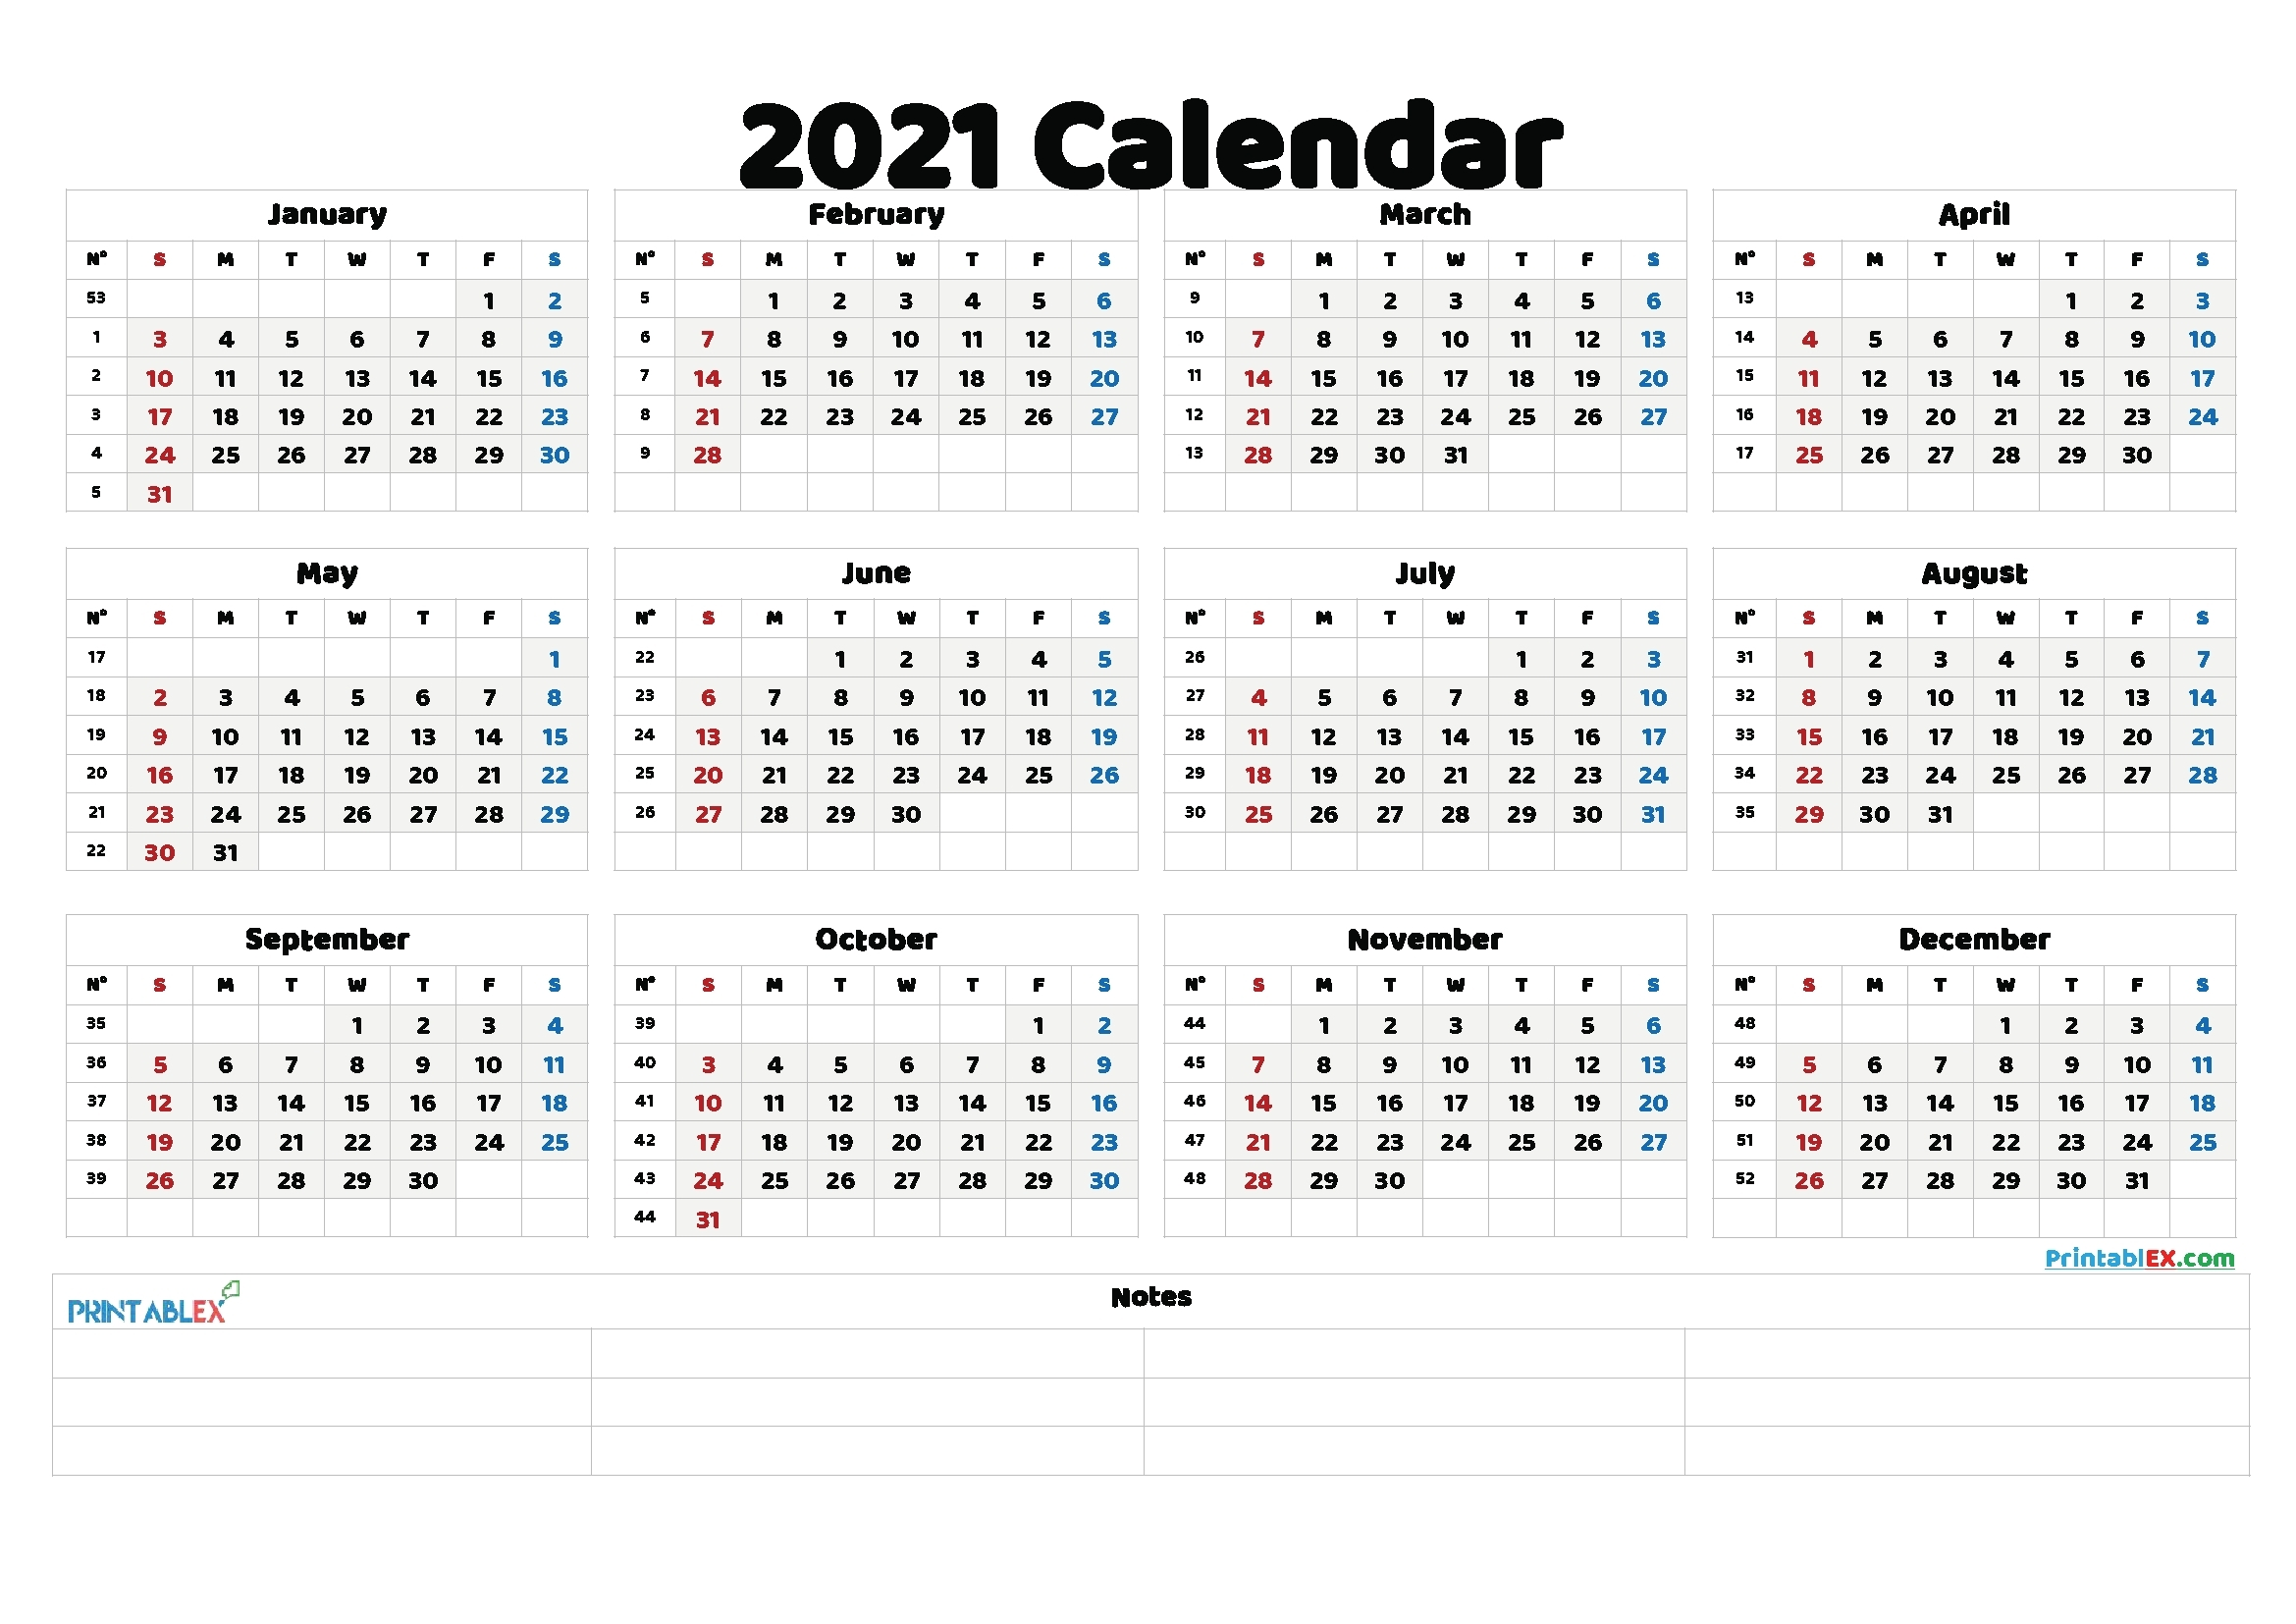 Week Number 2021 Excel - Calendar Inspiration Design pertaining to 2021 Calendar Image By Week Numbers Graphics